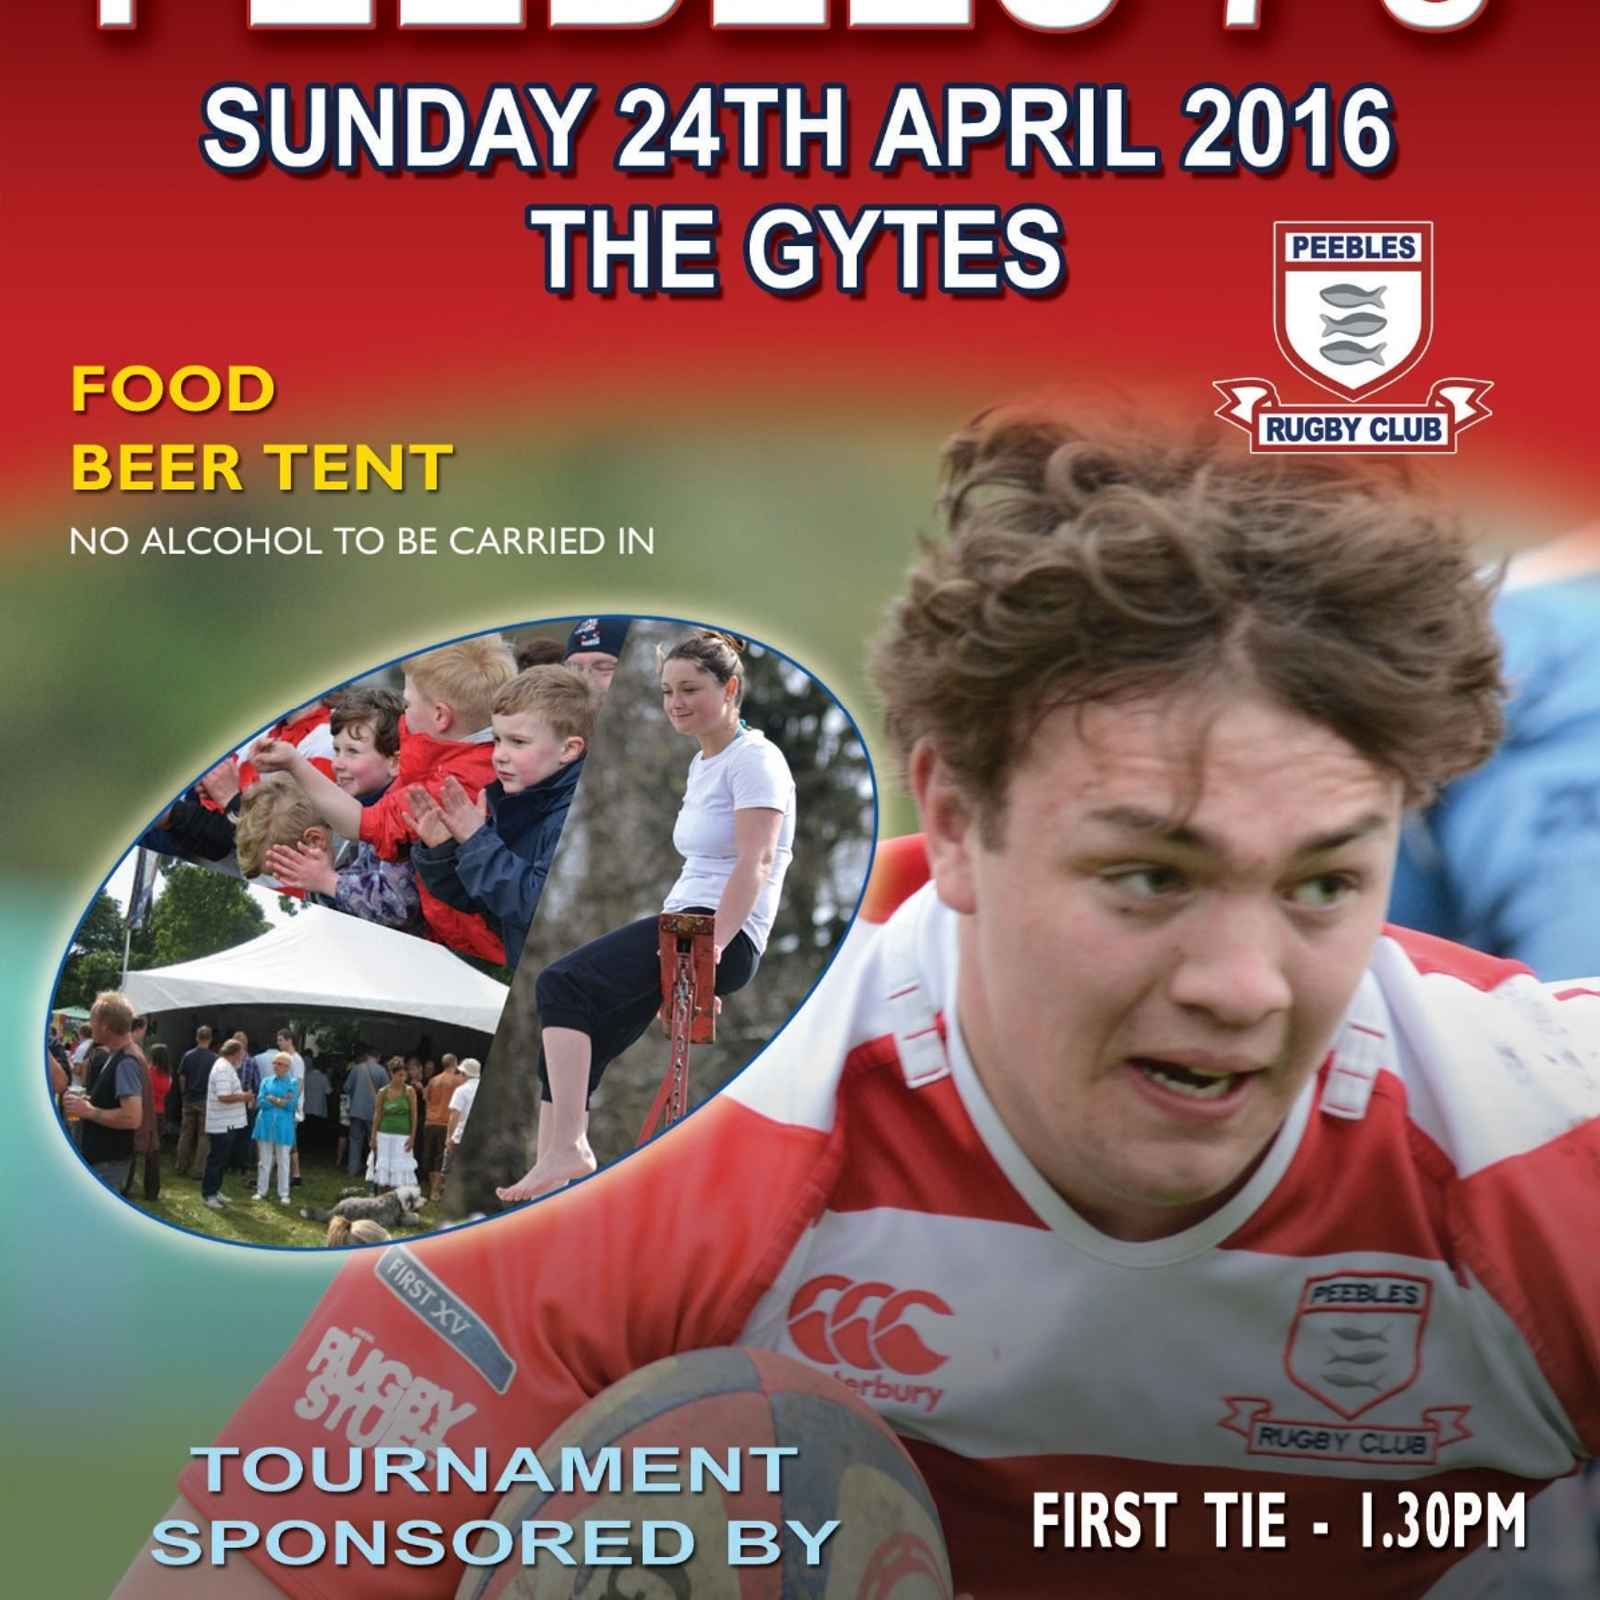 Peebles 7s - This Sunday 24th April